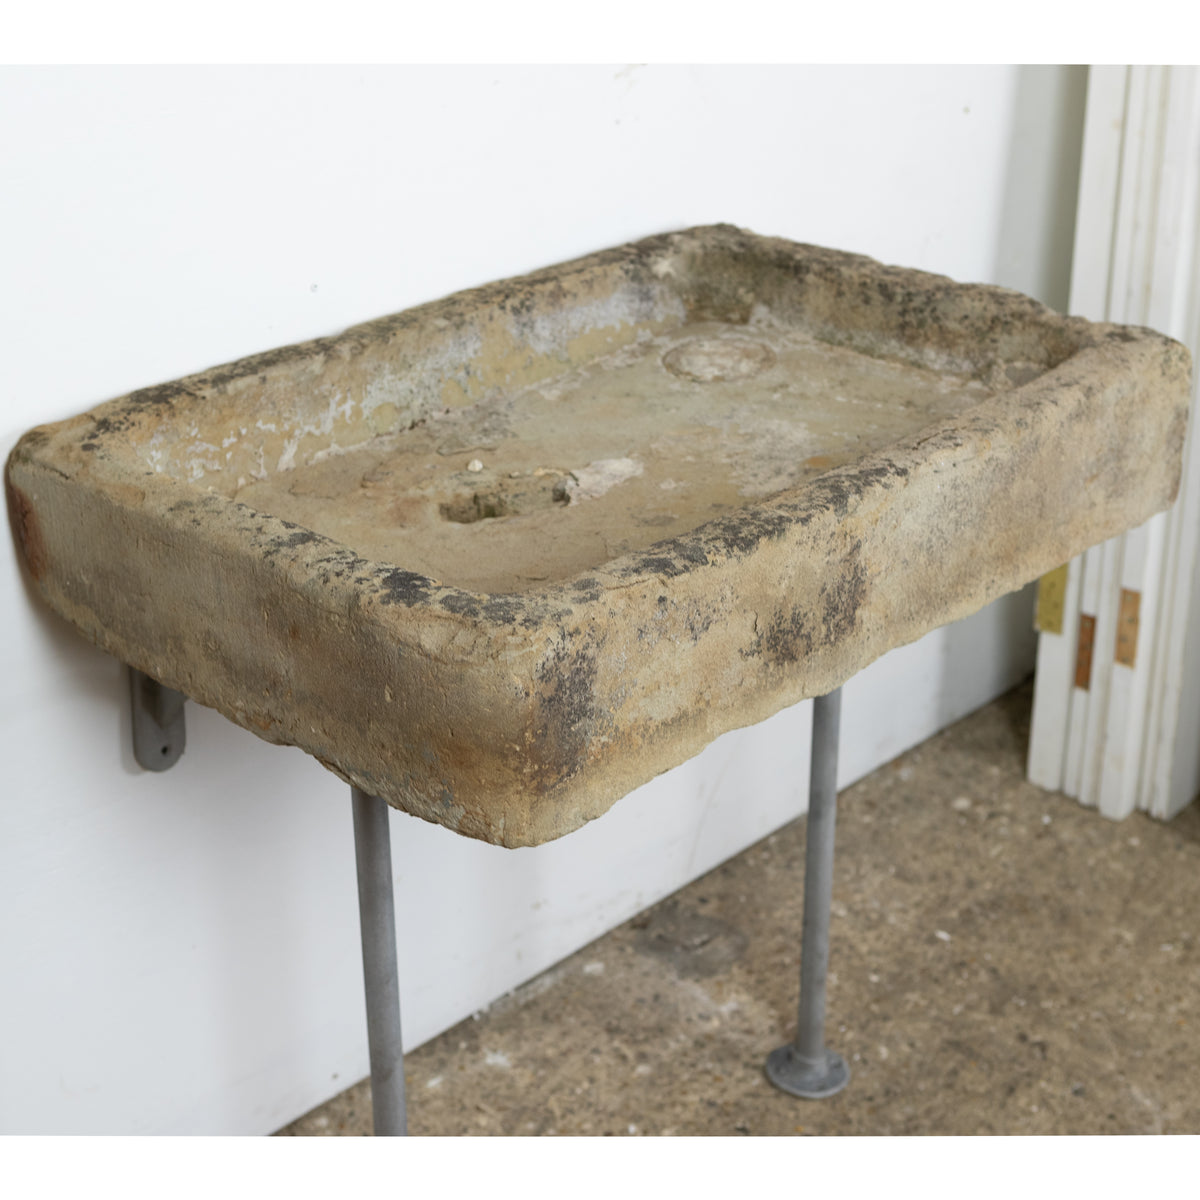 Antique Rustic York Stone Sink Basin | The Architectural Forum